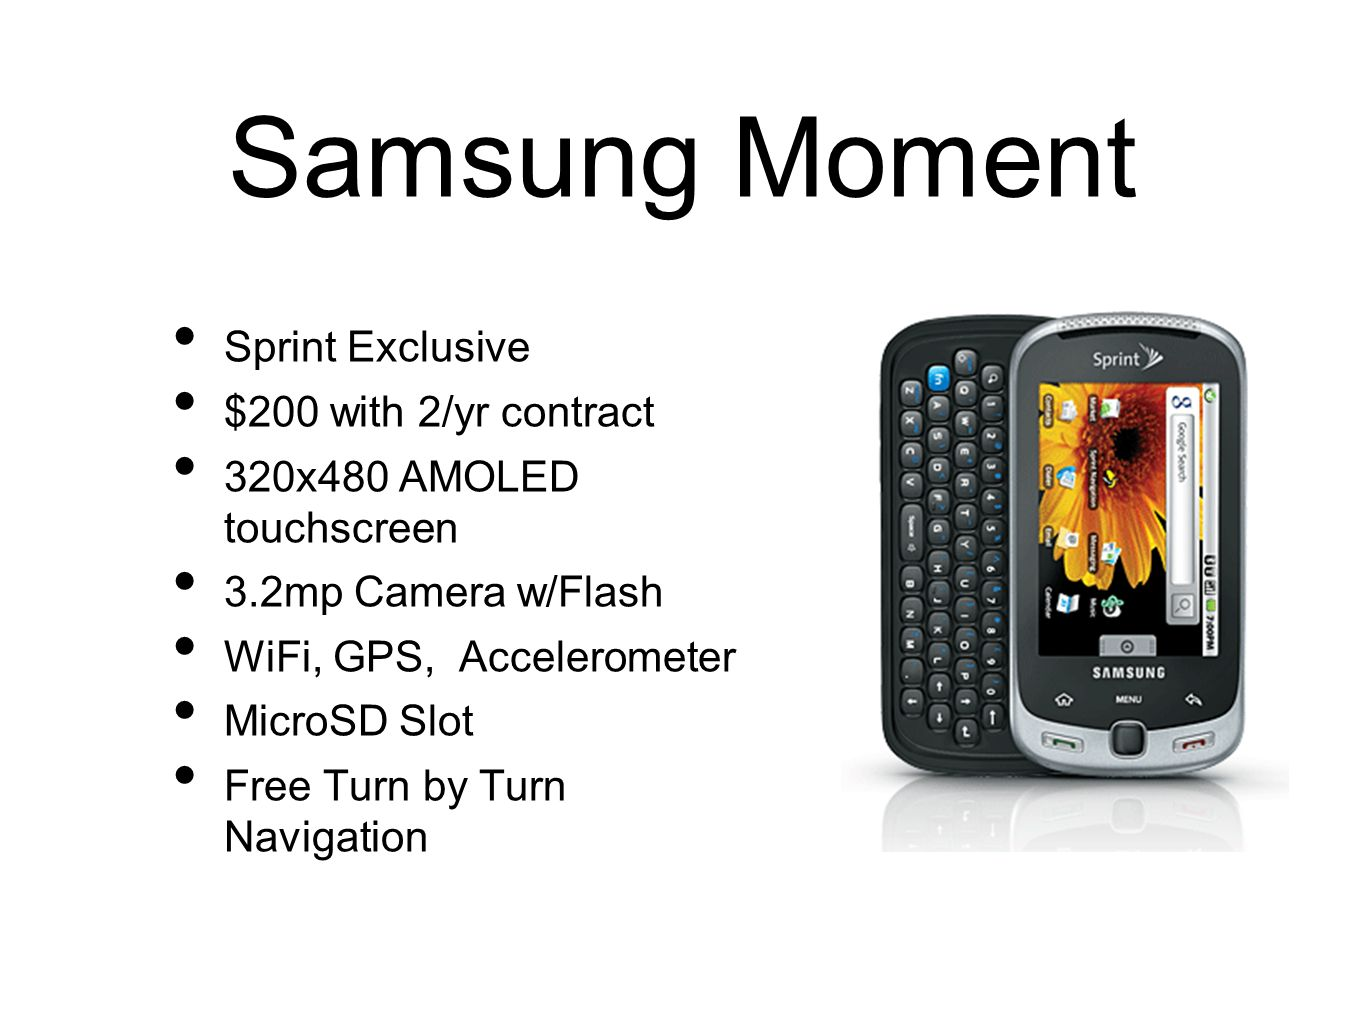 Samsung Moment Sprint Exclusive $200 with 2/yr contract 320x480 AMOLED touchscreen 3.2mp Camera w/Flash WiFi, GPS, Accelerometer MicroSD Slot Free Tur